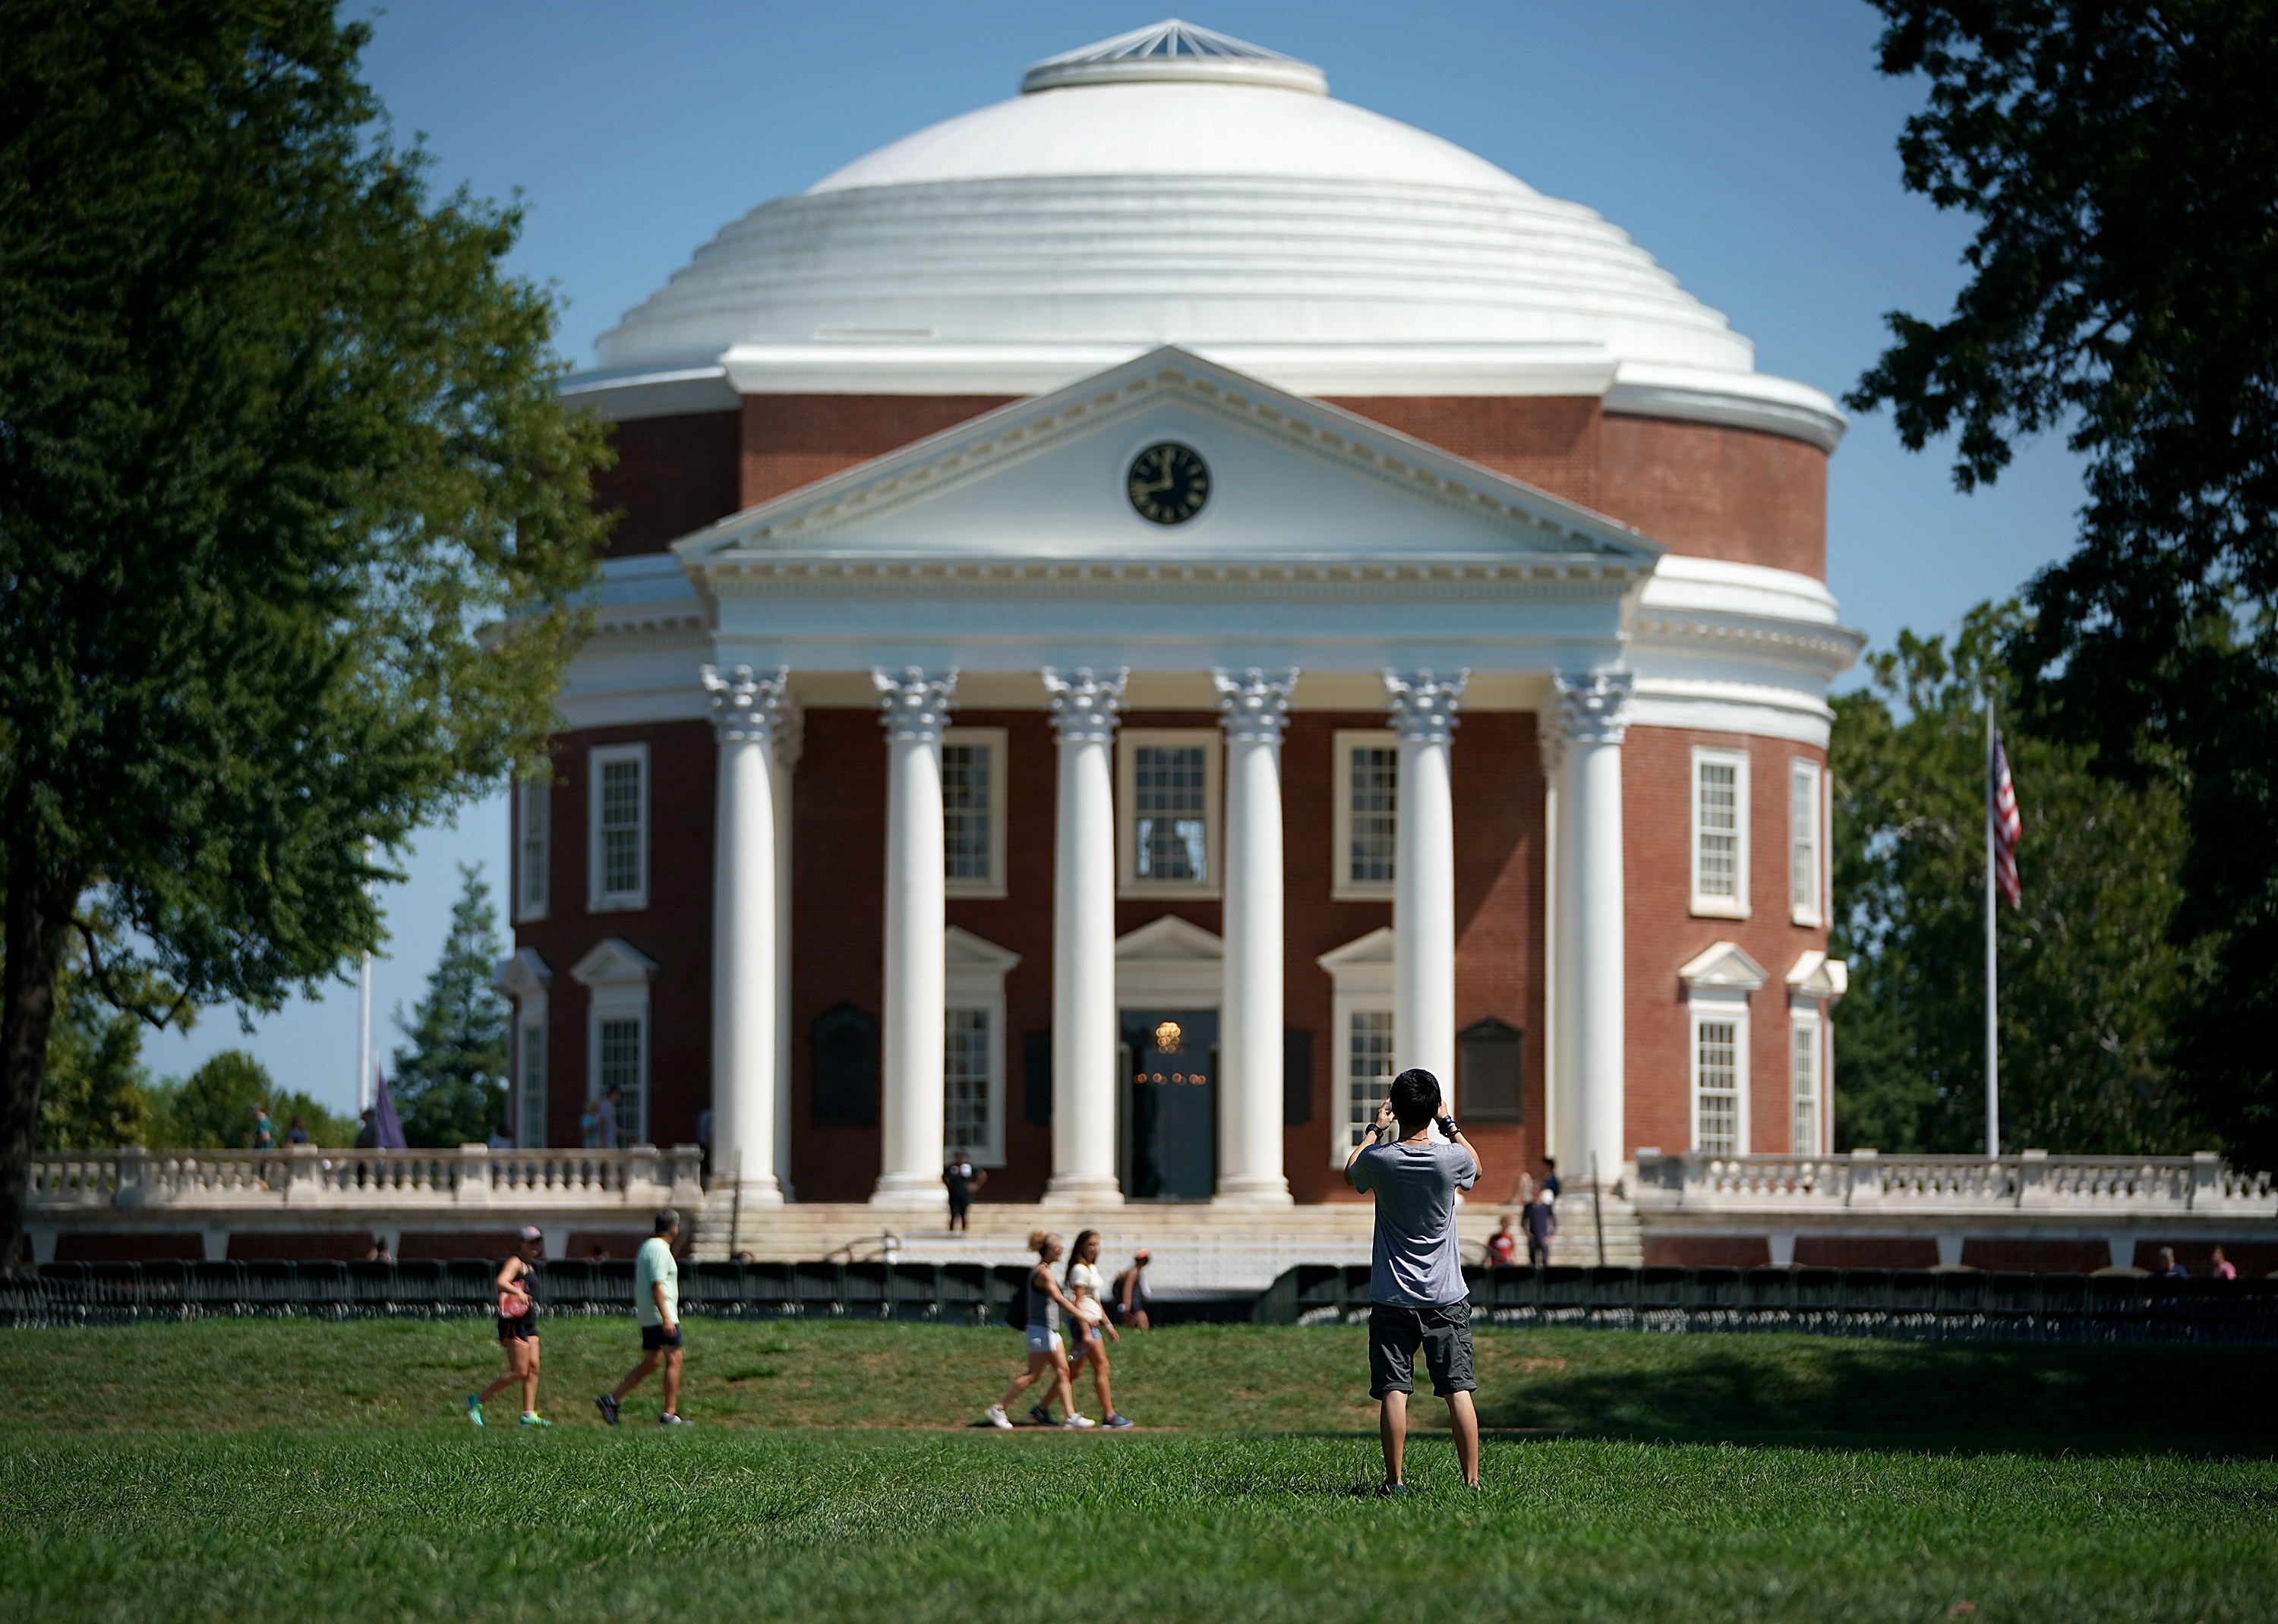 Students return to the University of Virginia for the fall semester on August 19, 2017 in Charlottesville, Virginia. (Photo by Win McNamee/Getty Images)